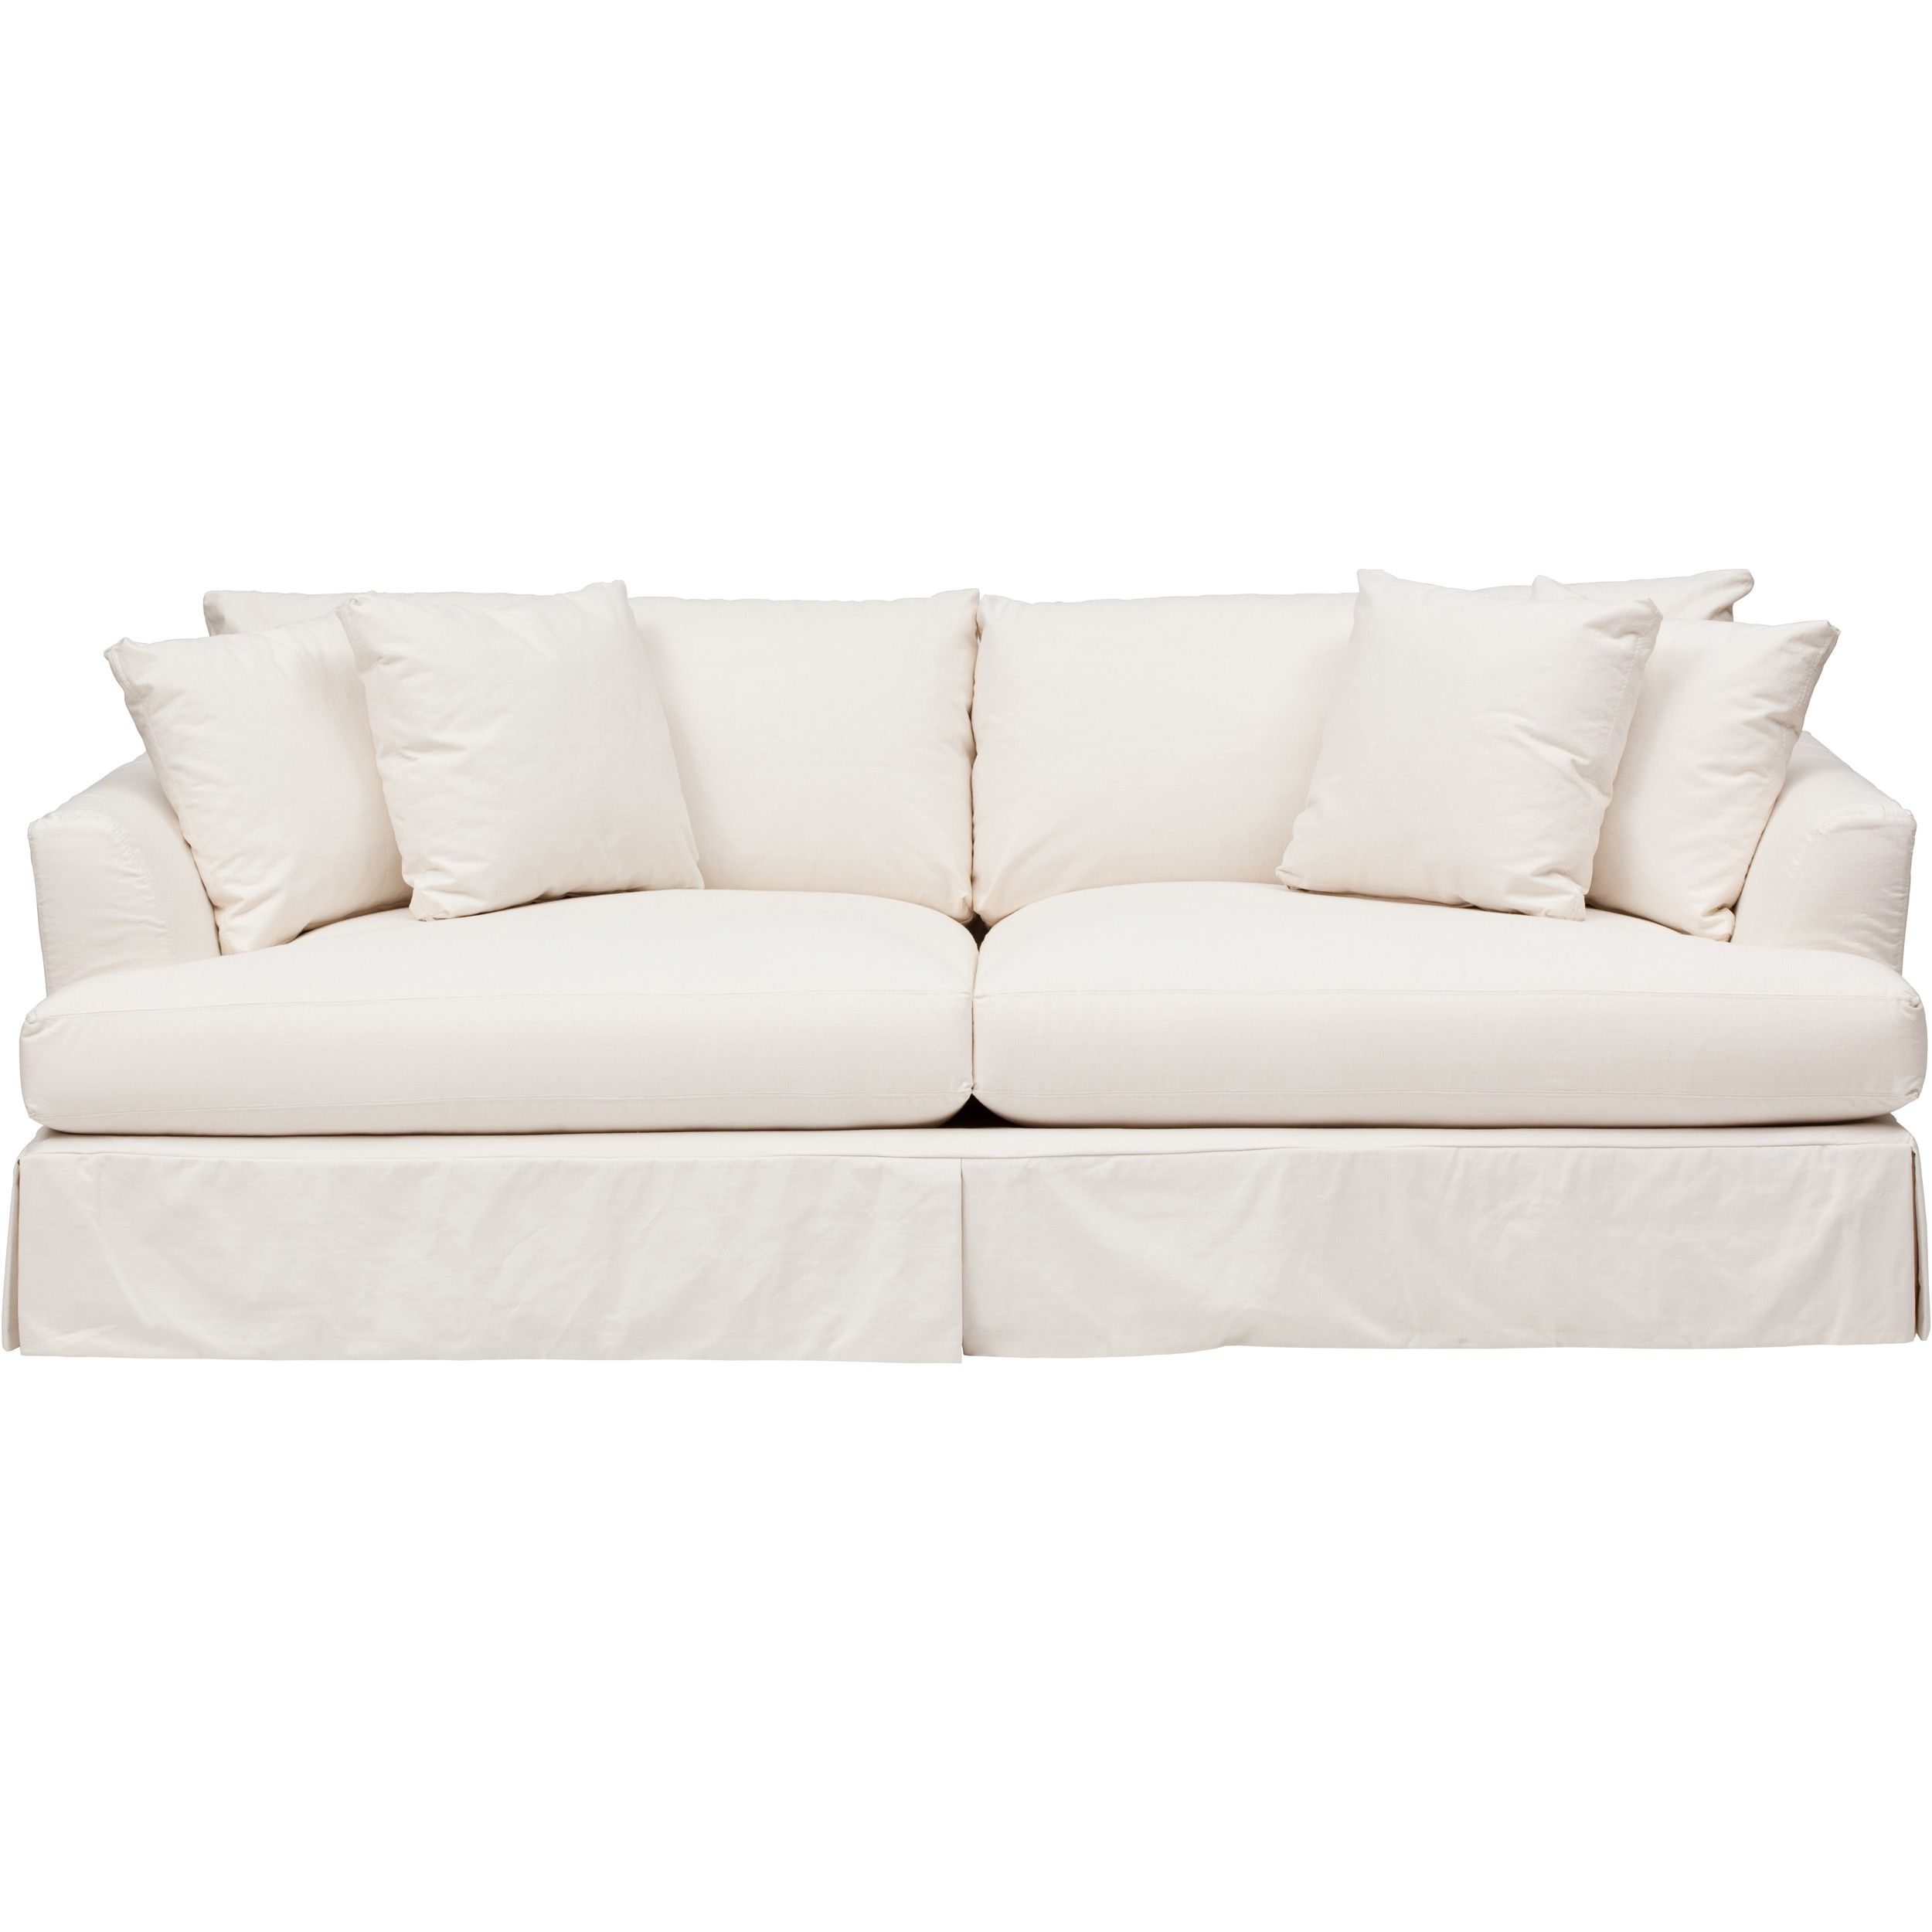 covers Three cushion slipcovers sofa